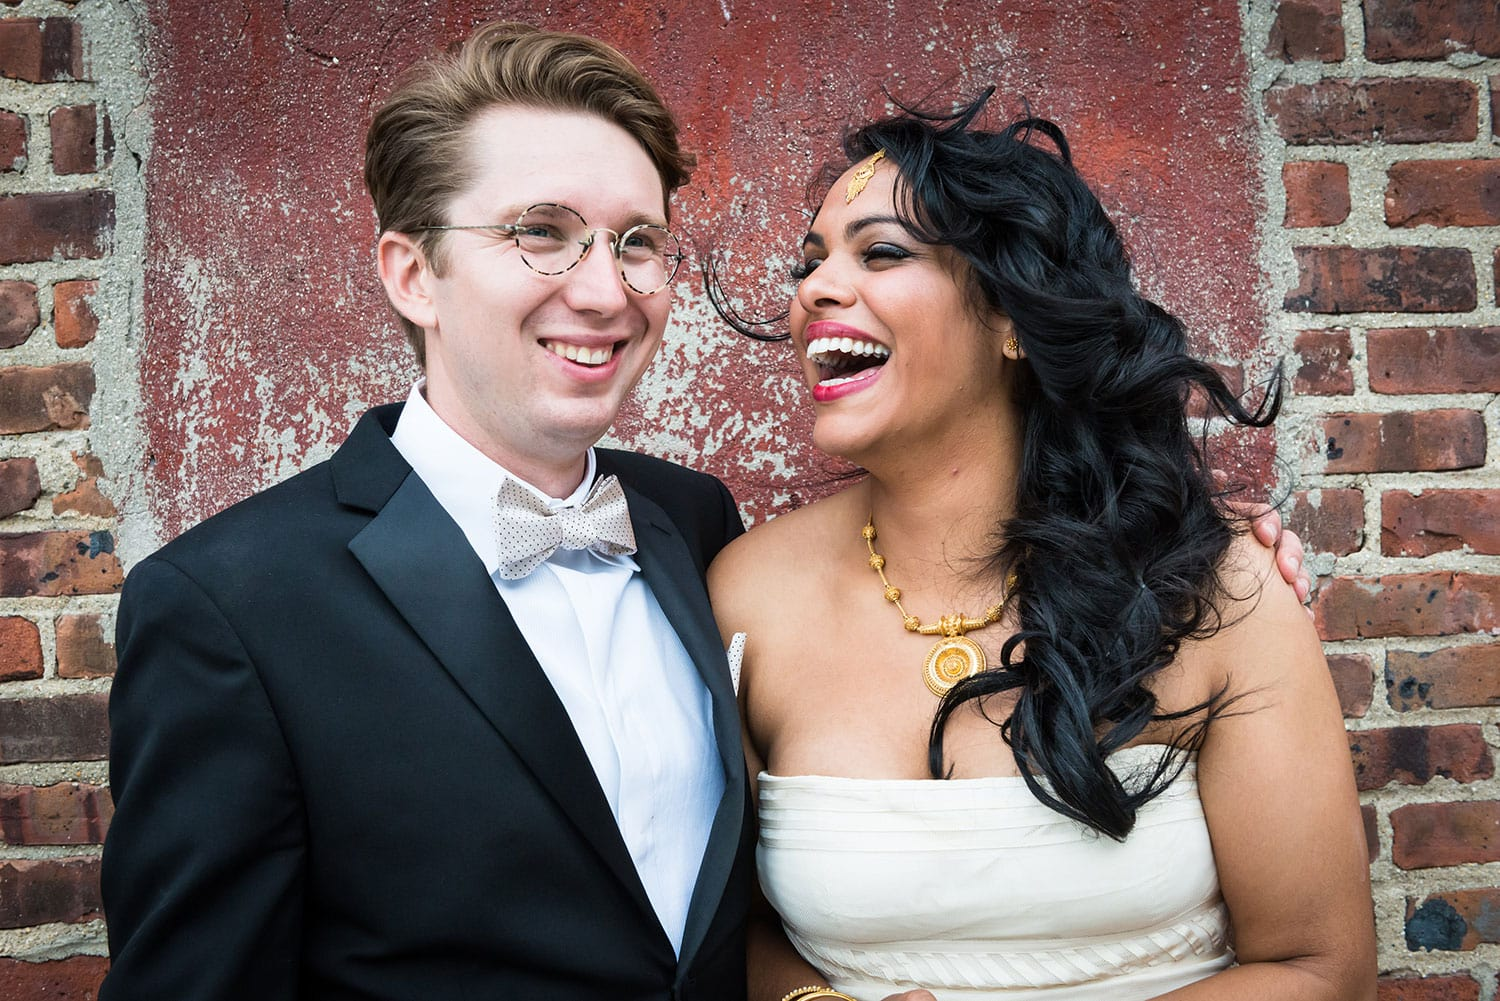 Hipster interracial wedding